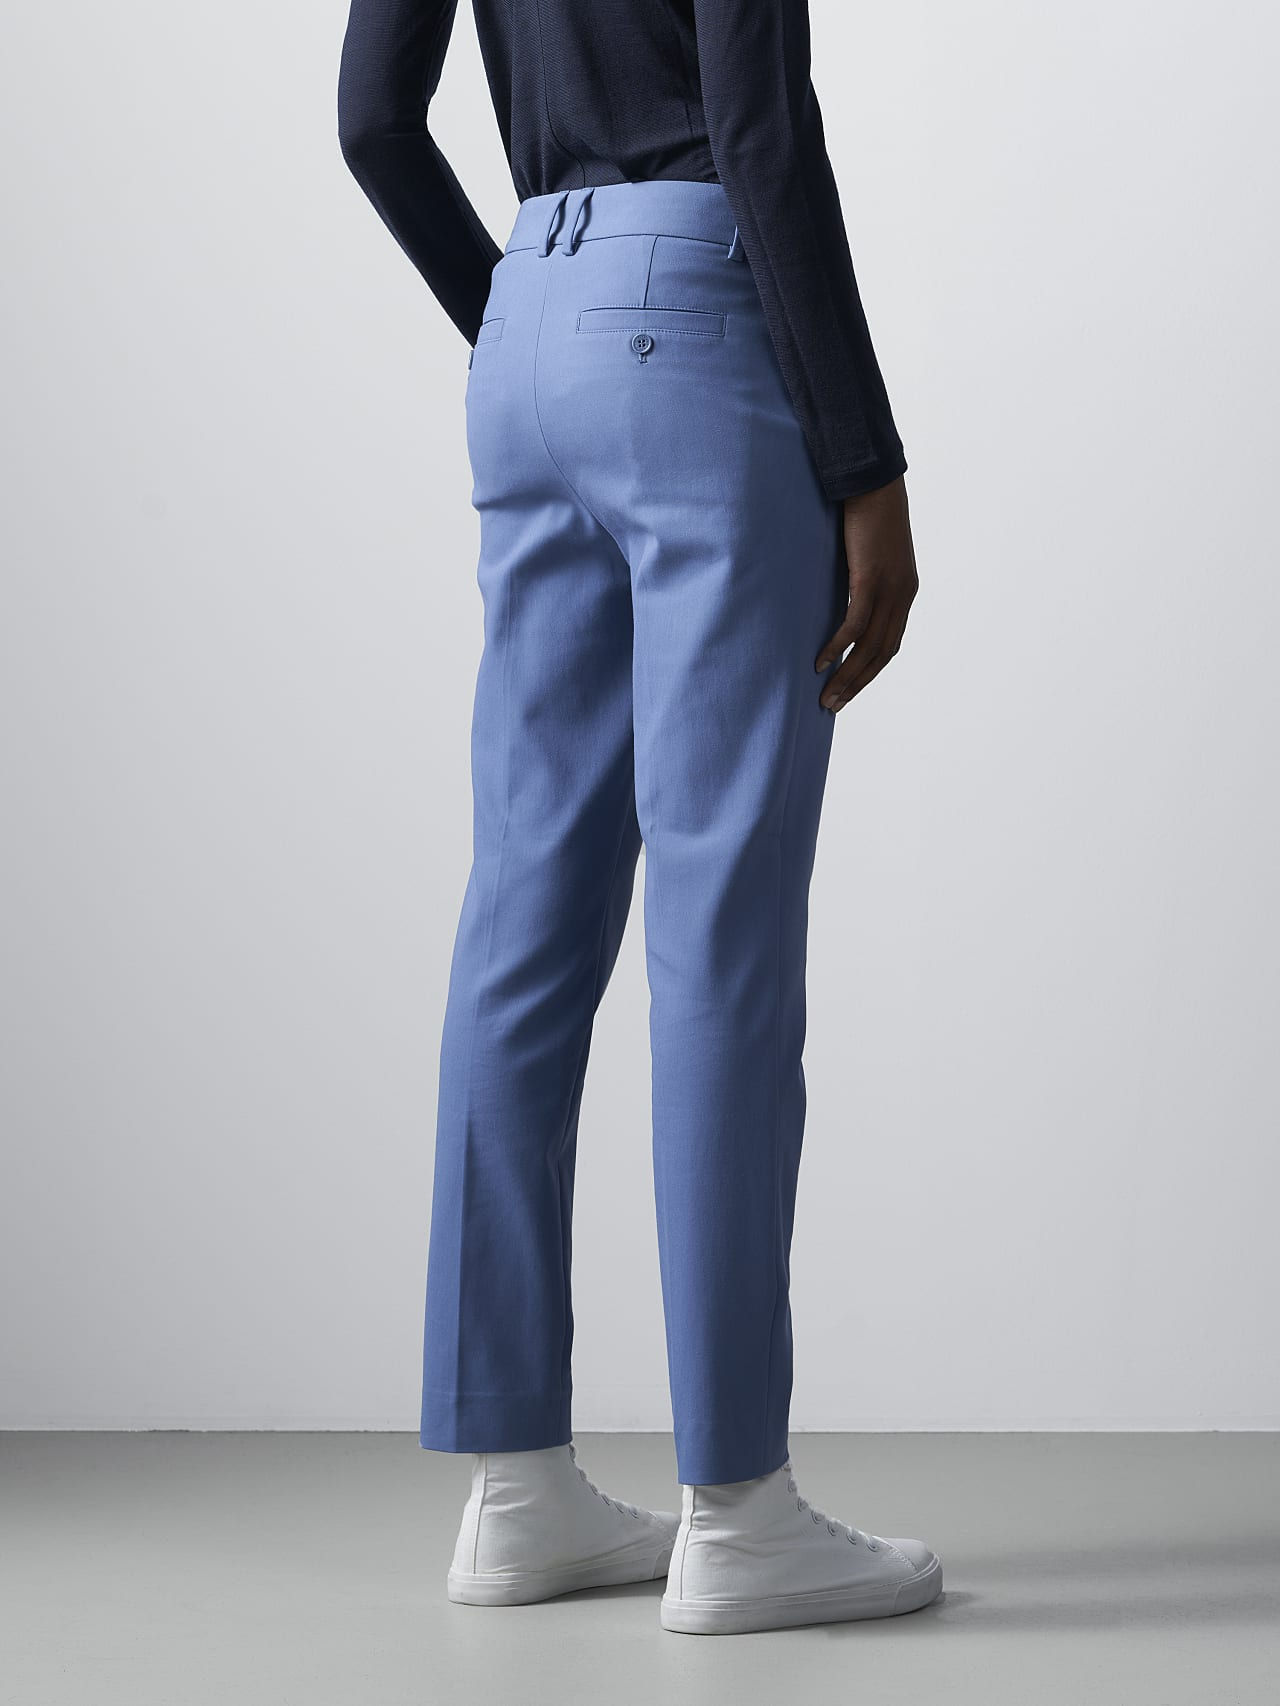 PERTI V1.Y5.02 Slim-Fit Tapered Pants light blue Front Main Alpha Tauri